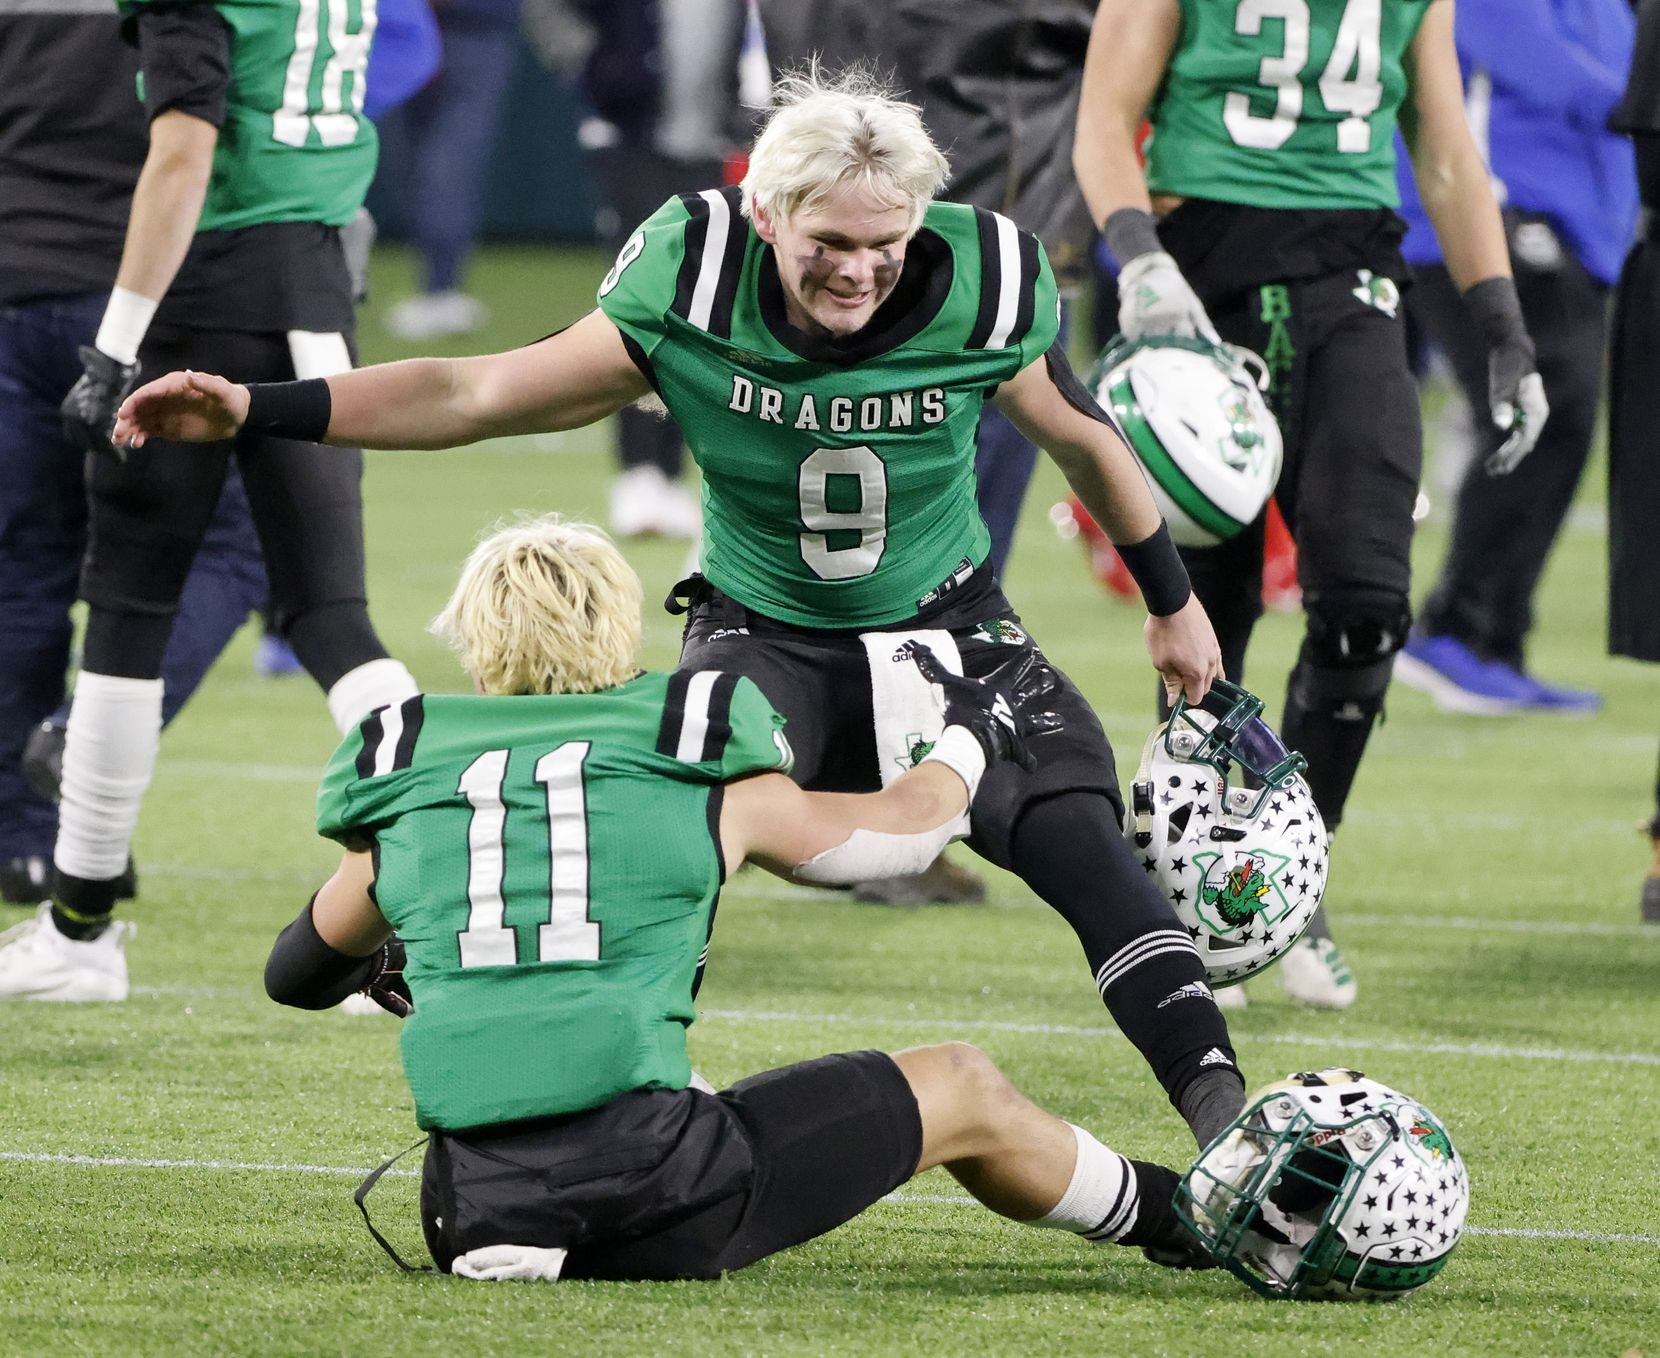 Southlake's Hunter Holden (9) and Josh Spaeth (11) celebrate their victory over Duncanville during the Class 6A Division I state high school football semifinal in Arlington, Texas on Jan. 9, 2020. (Michael Ainsworth)